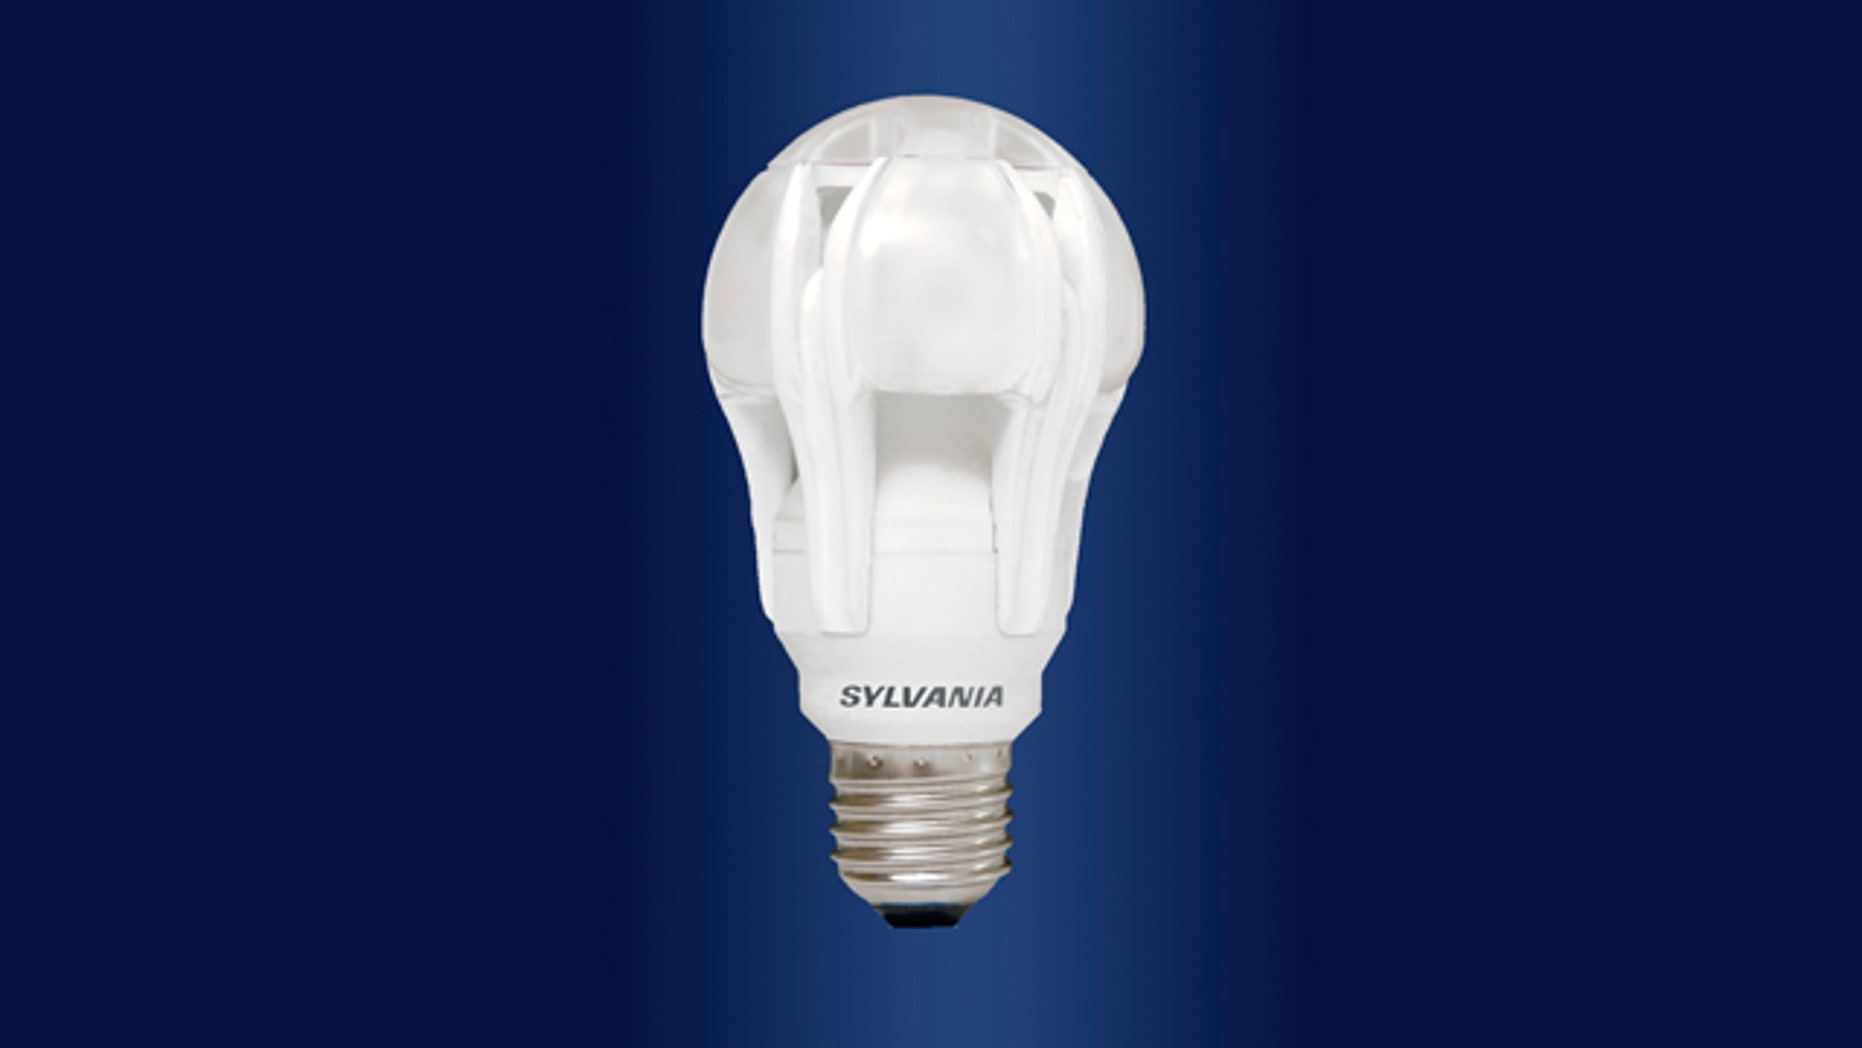 As Government Bans Regular Light Bulbs, LED Replacements Will Cost